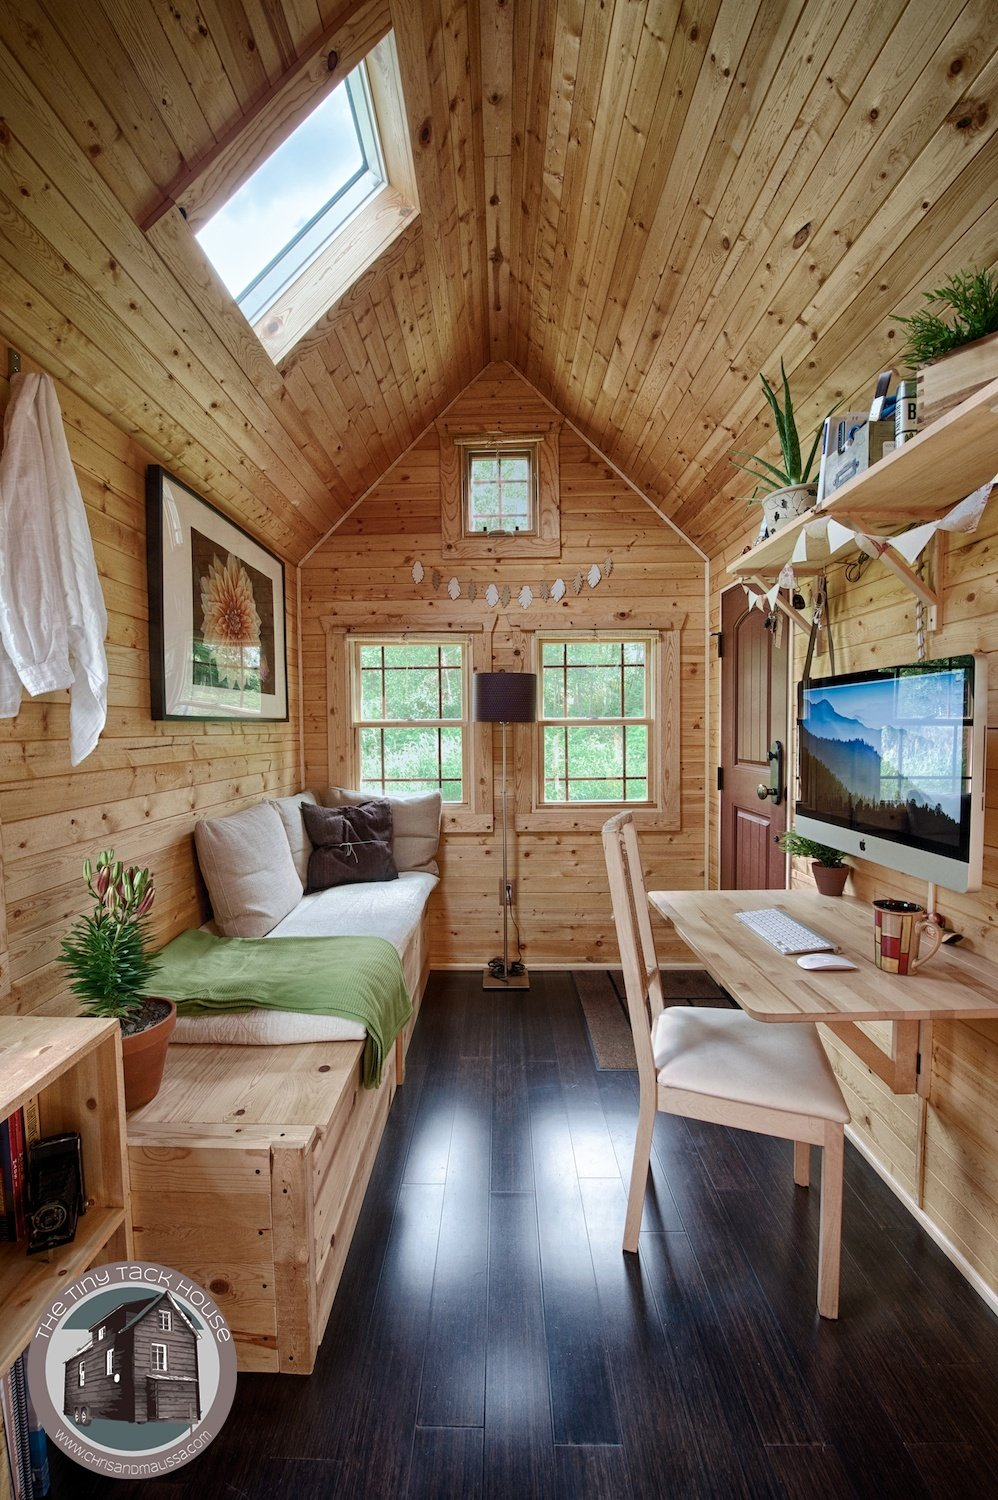 Tiny Home Interior Adorable 16 Tiny Houses You Wish You Could Live In